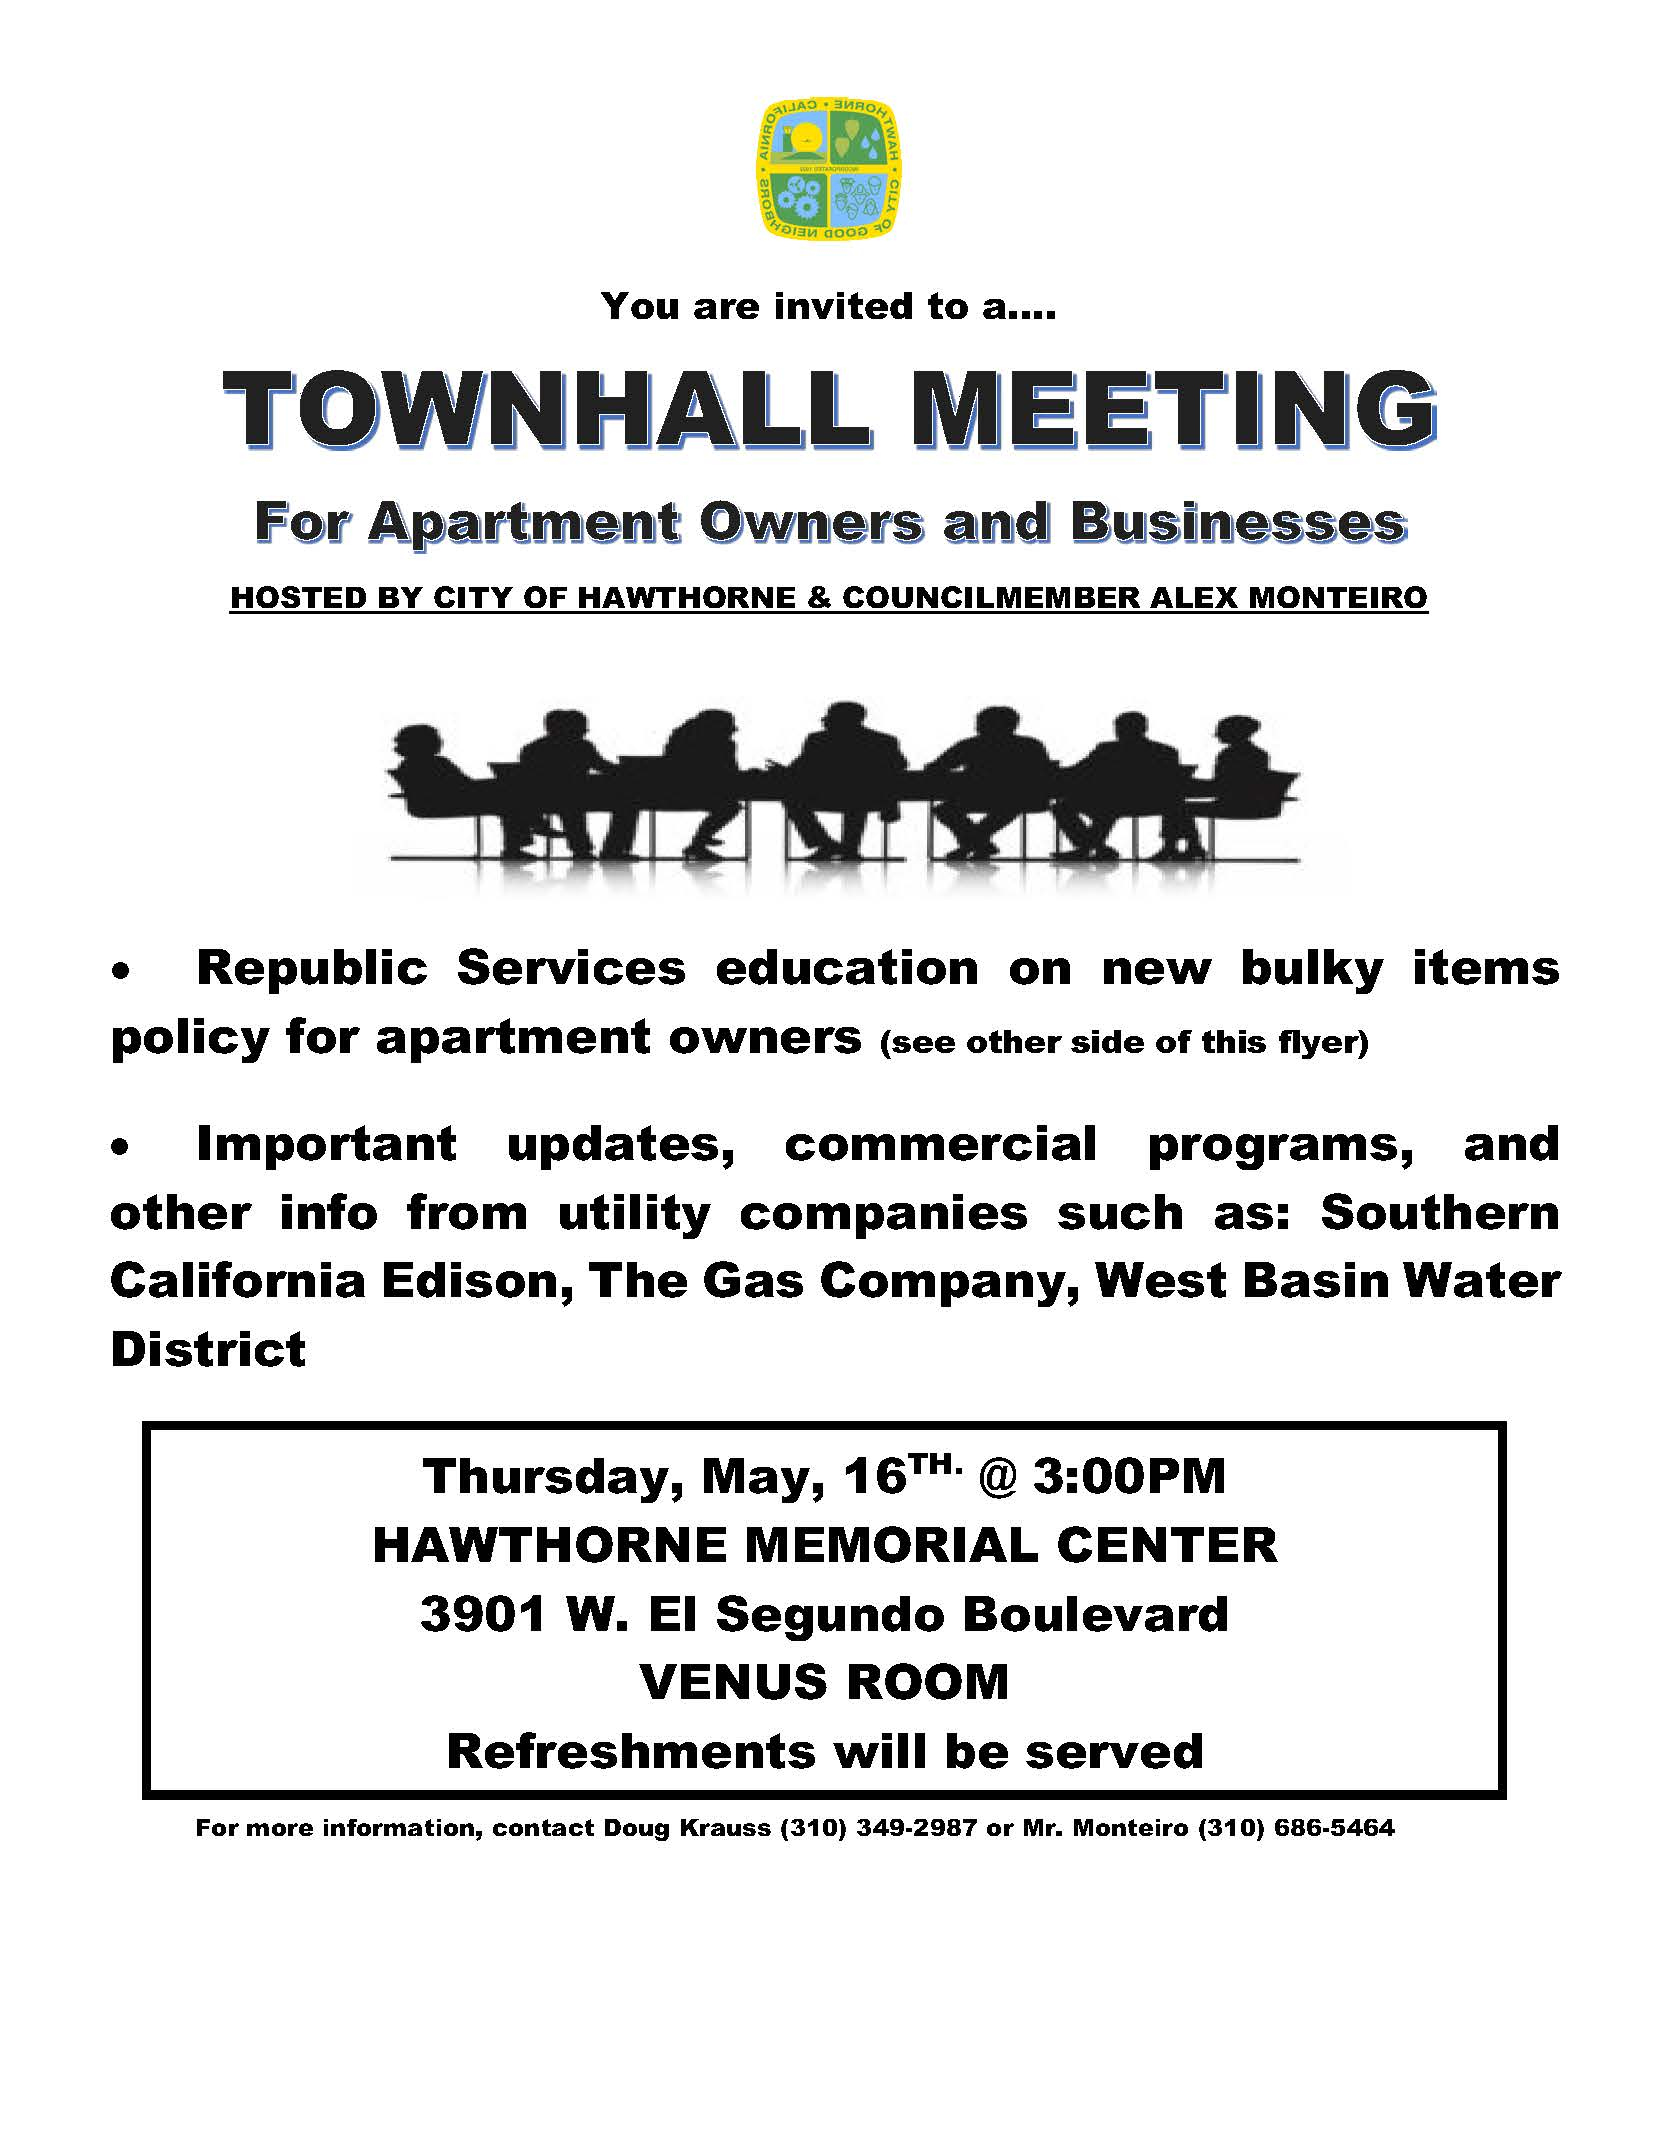 TownHall Meeting for Apartment Owners and Businesses